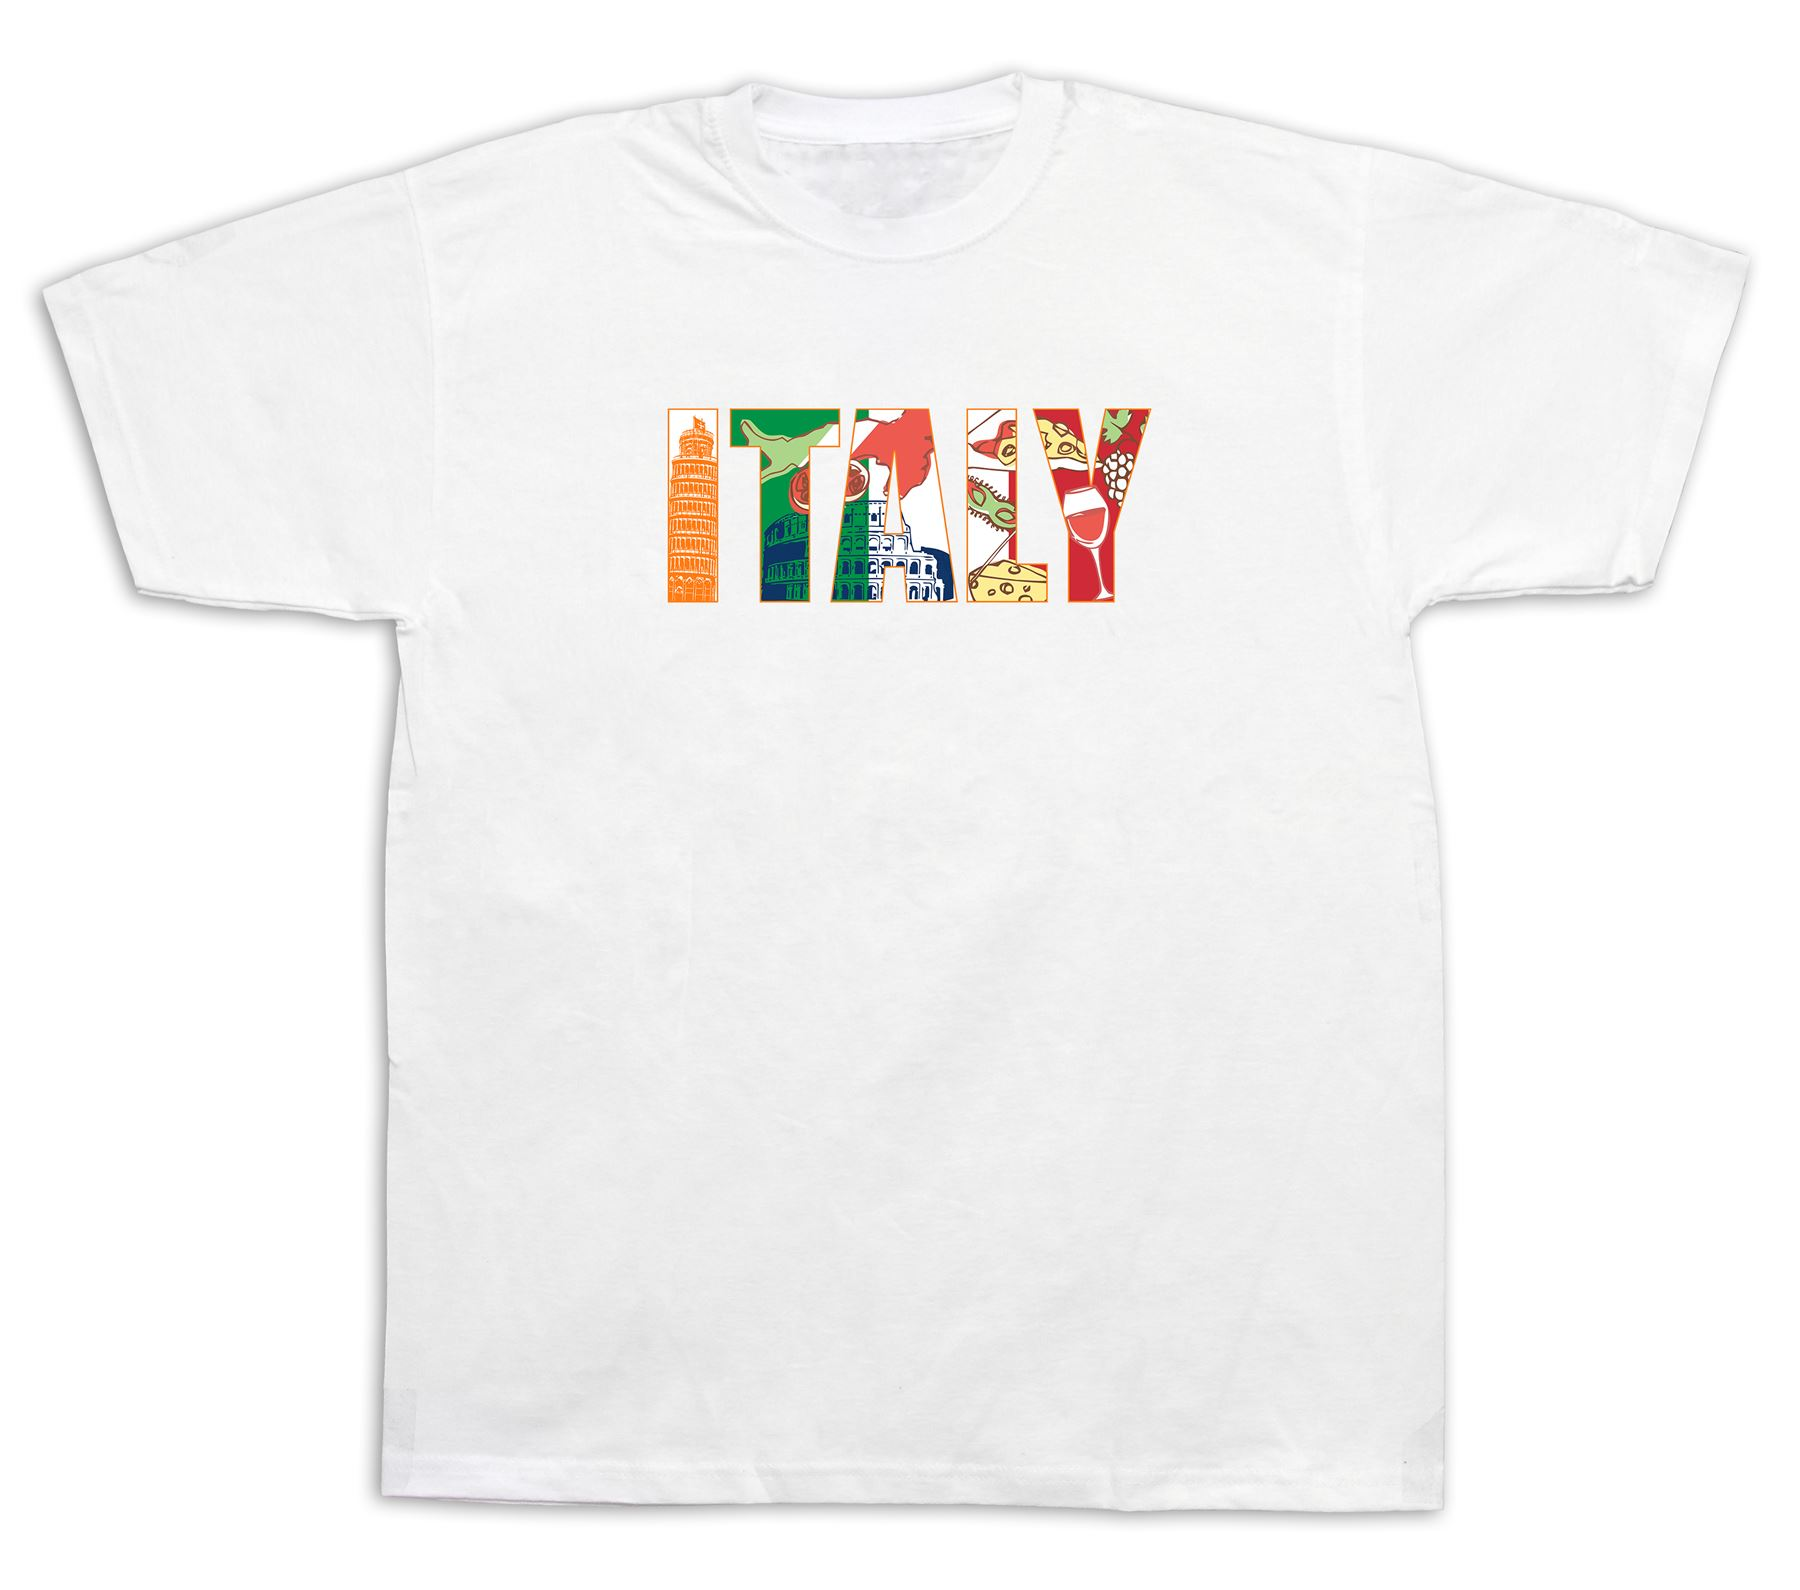 italia italy tourist spots city sites t shirt funny casual